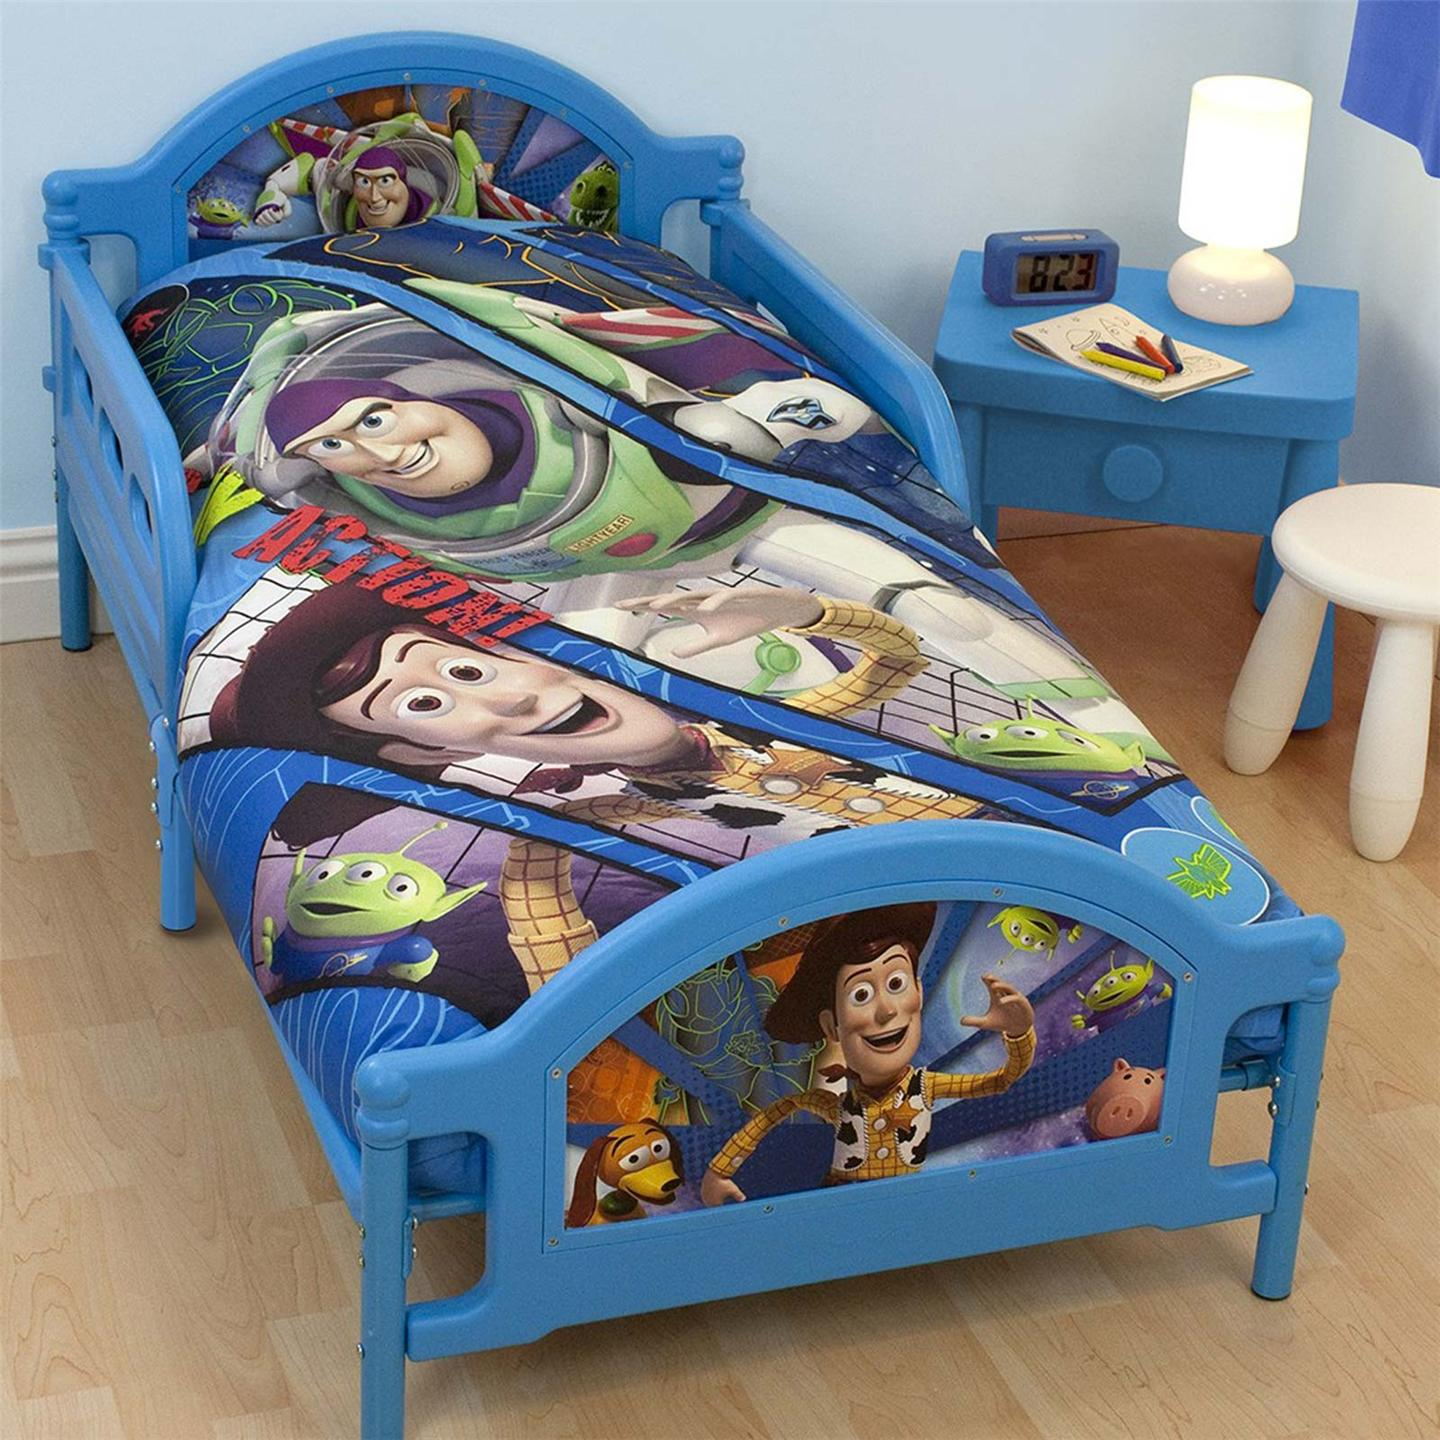 Toy Story Fractal Junior Toddler Bed New Buzz Lightyear